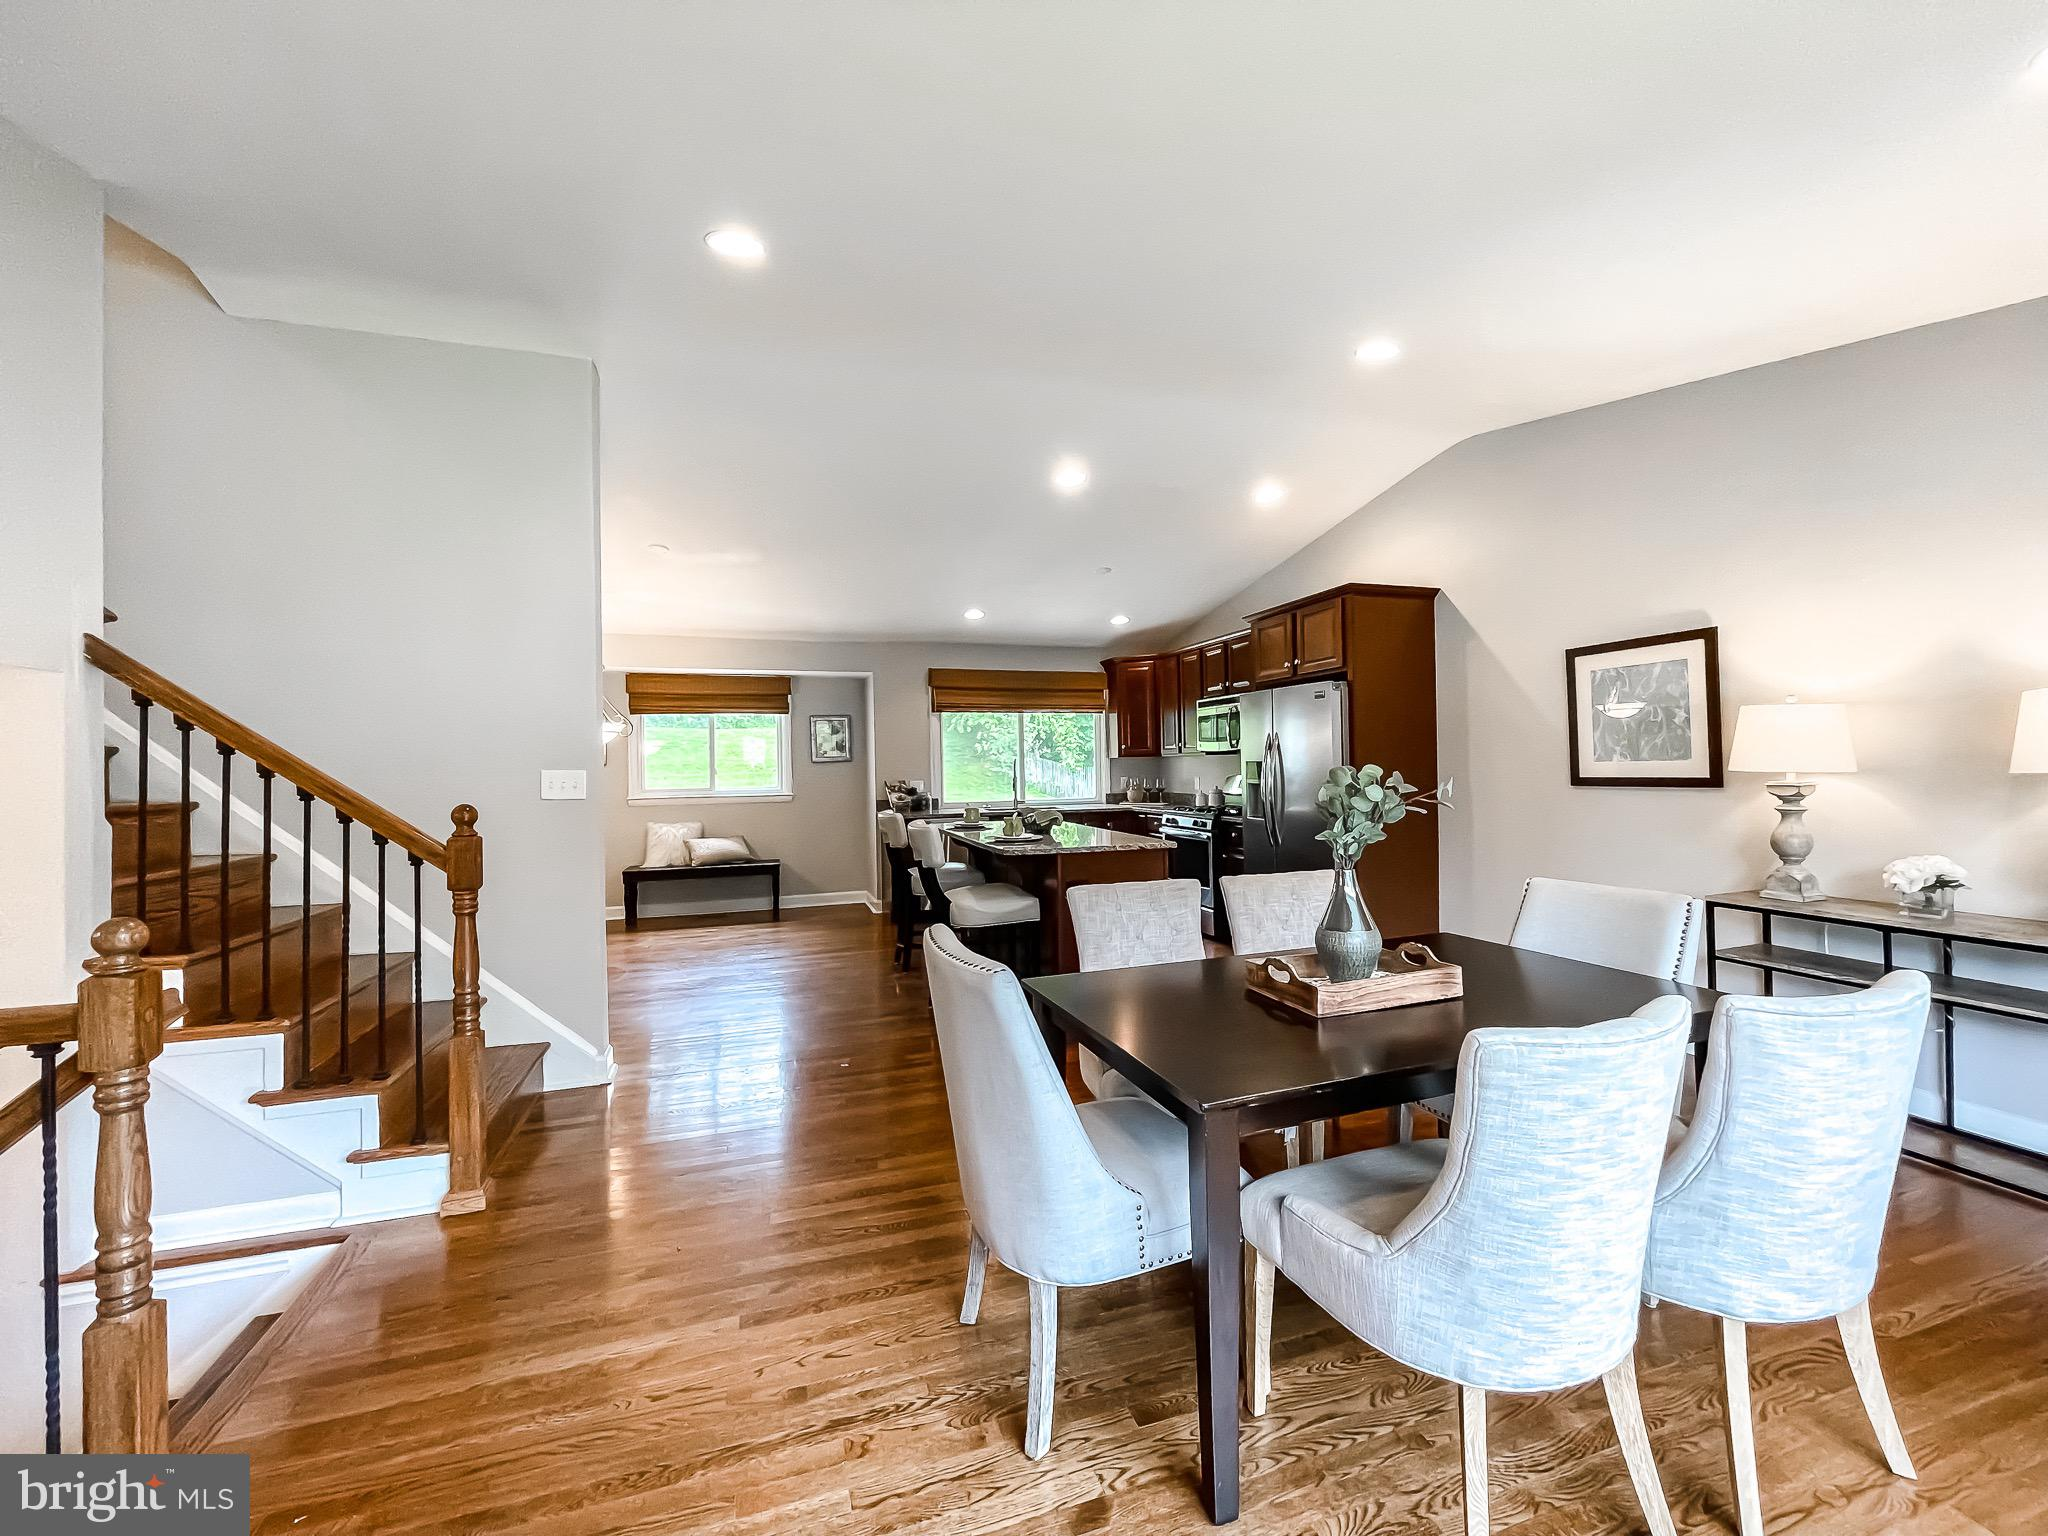 Gorgeous split-level four bedroom, two and half bath, remodeled home. Spacious back yard with patio. Open kitchen and dining room with stainless steel appliances and large windows. Located in Timonium, near Padonia rd. Nearby shopping, entertainment, and restaurant.